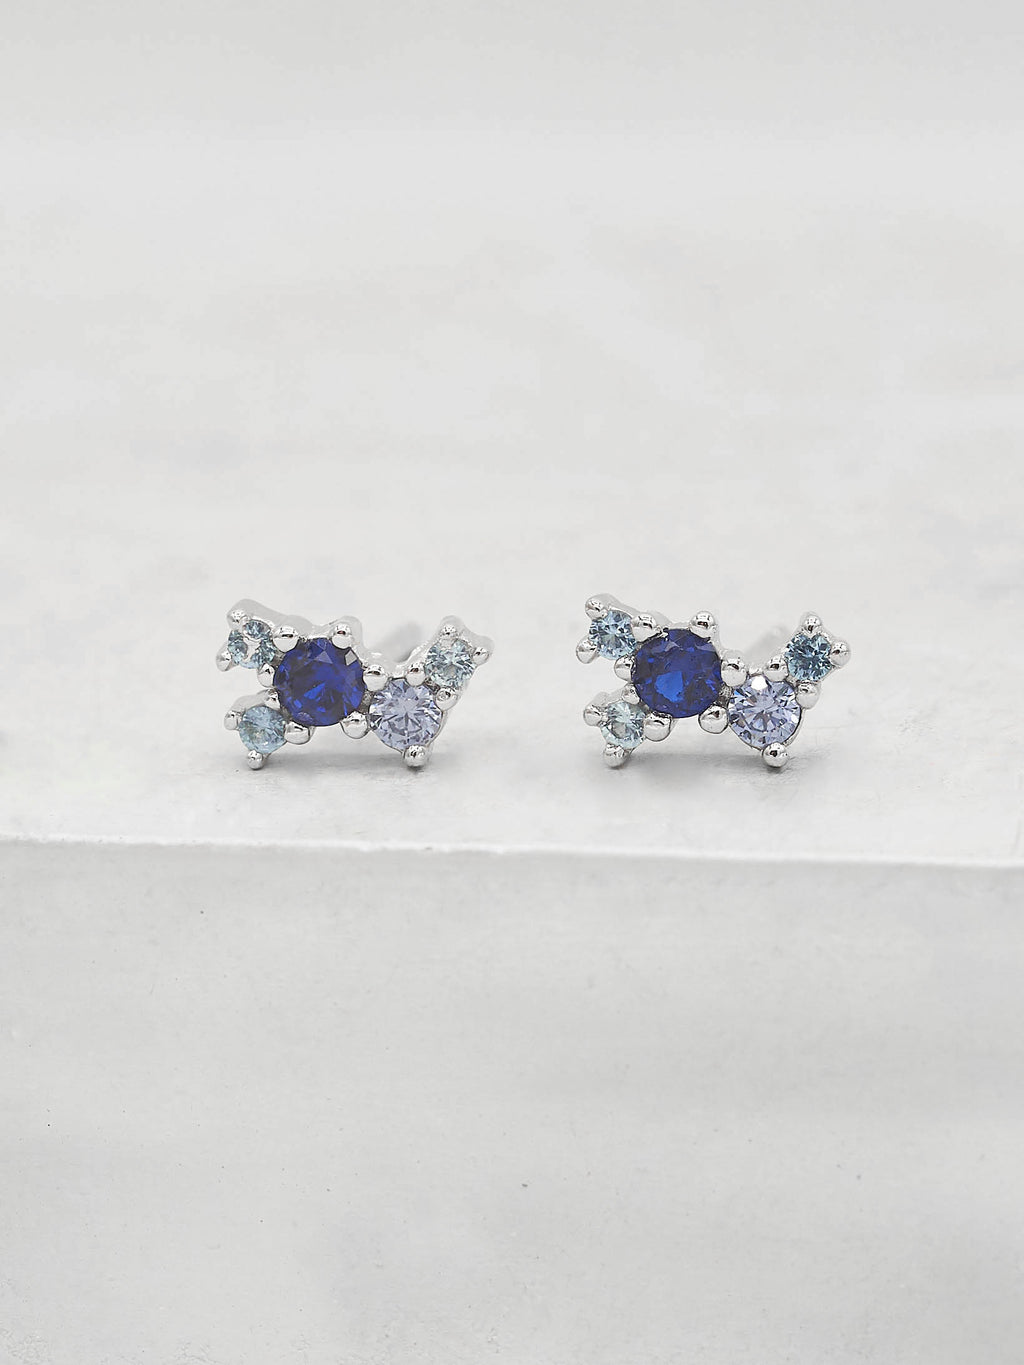 Rhodium  Plated Brass Blue Sapphire CZ Cubic Zirconia Twilight Style Stud dainty Earrings by The Faint Hearted jewelry